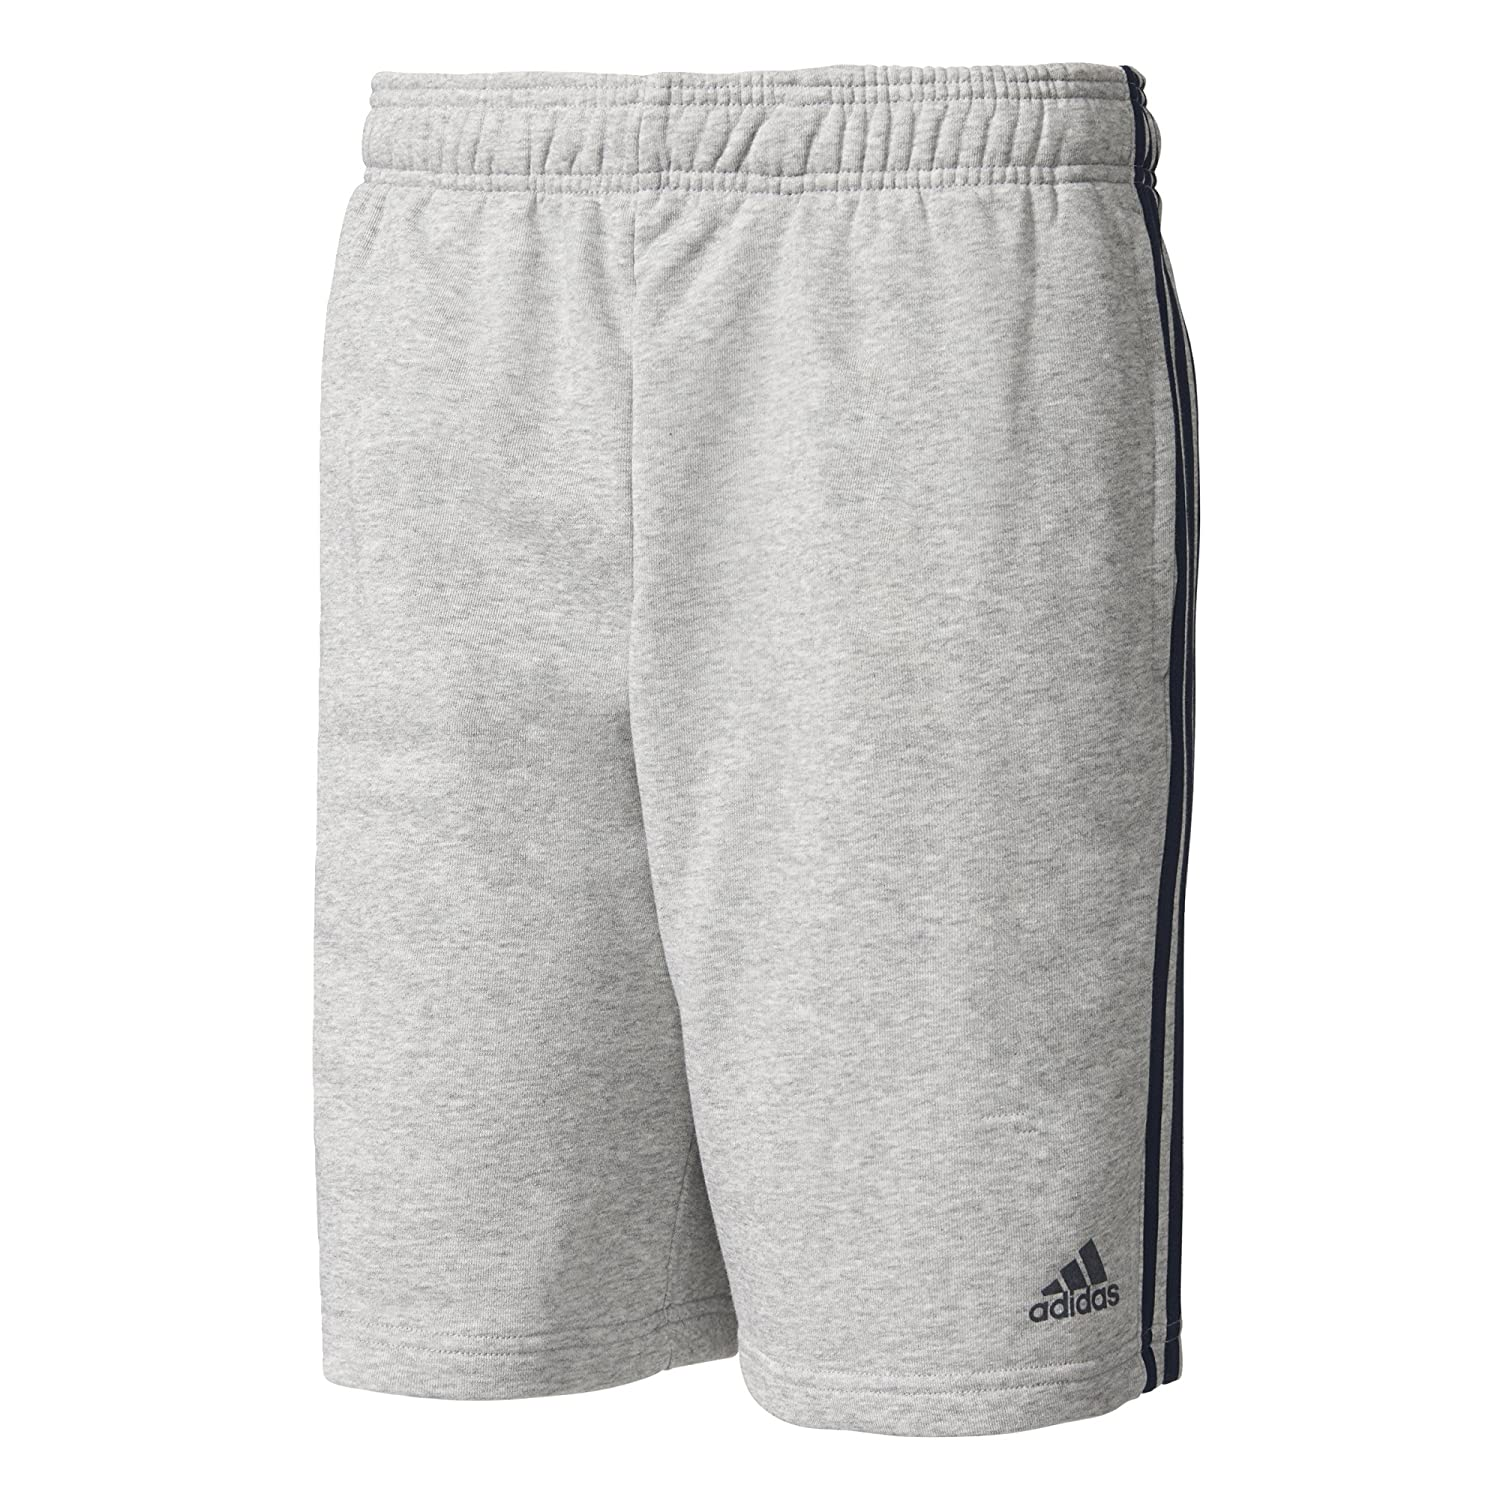 adidas Ess 3S Short Ft Shorts for Man, Grey (Brgrin/Maruni): Amazon.co.uk:  Sports & Outdoors